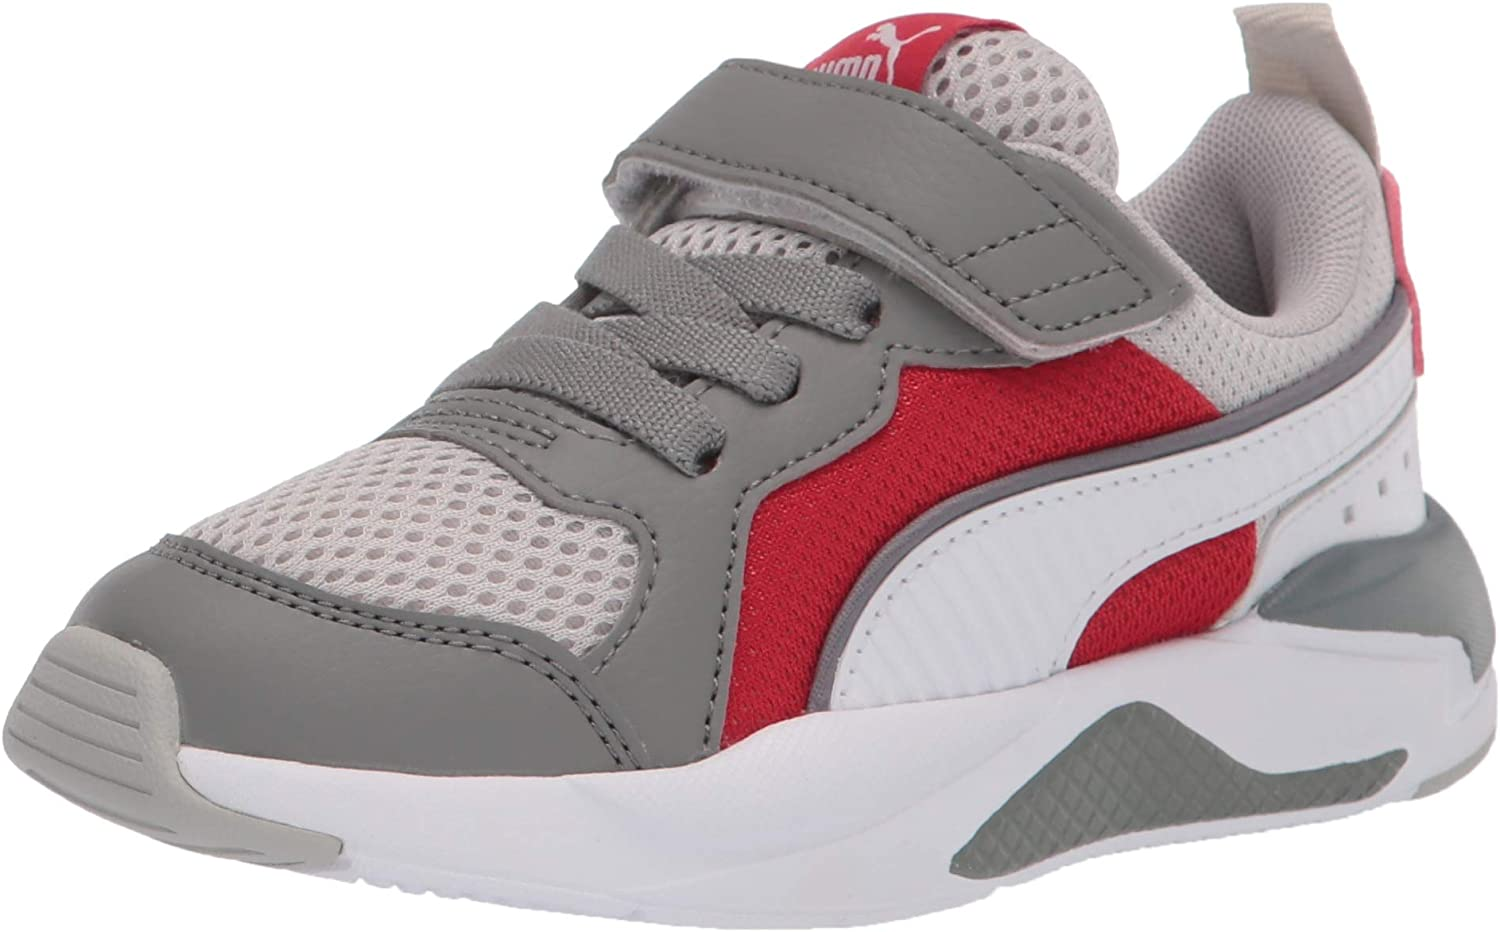 PUMA Special sale item Unisex-Child X-ray on Super special price Sneaker Slip